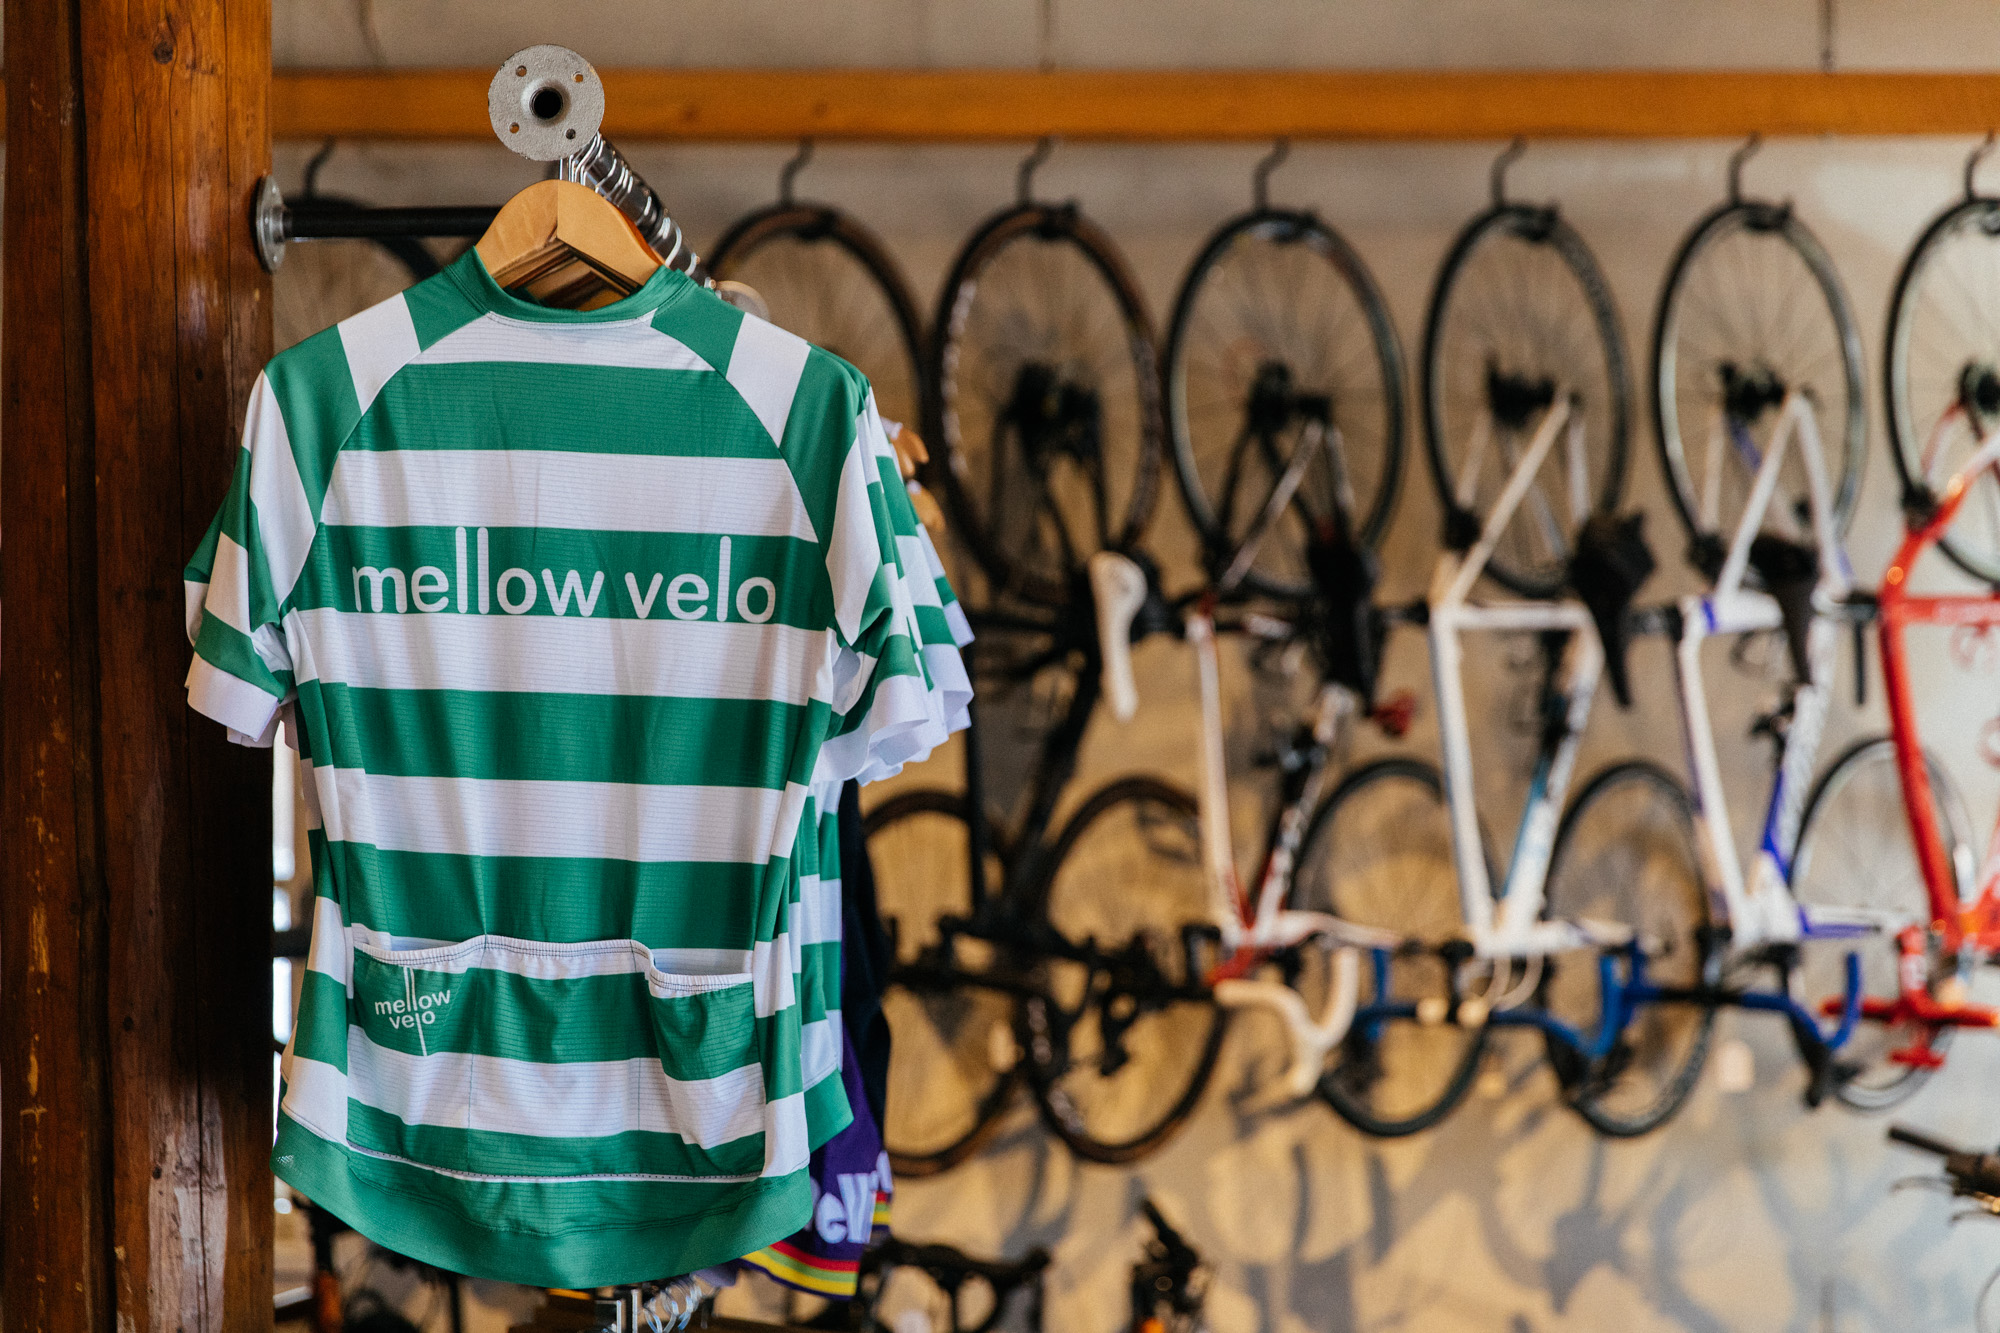 Try Before You Buy at Santa Fe's Mellow Velo